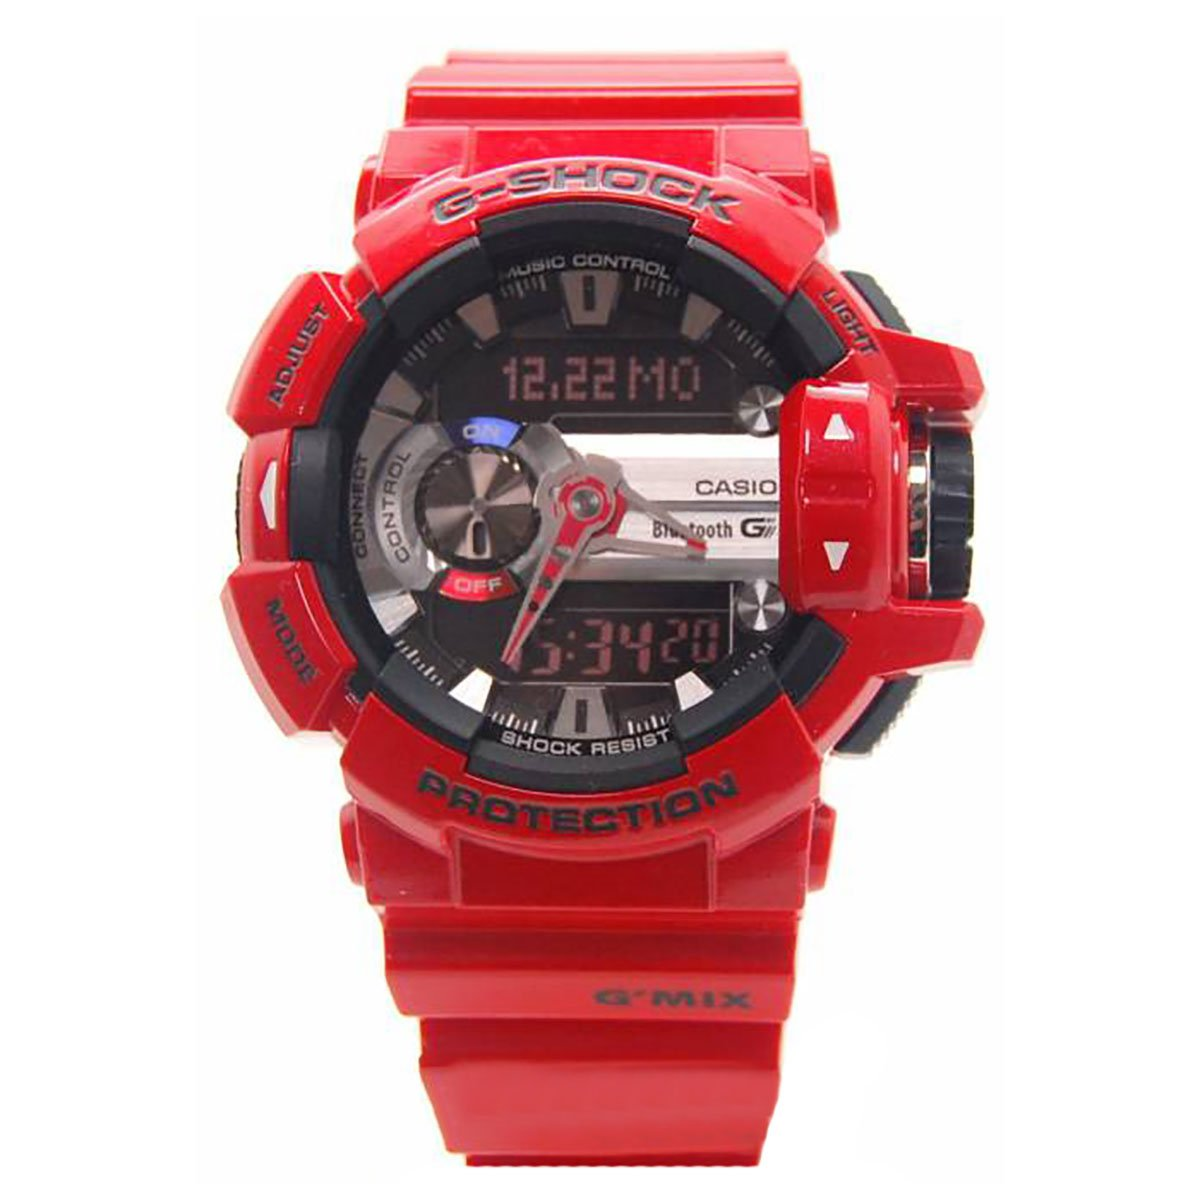 Casio G-Shock GBA400-4A Classic Series Stylish Watch – Red Black One Size